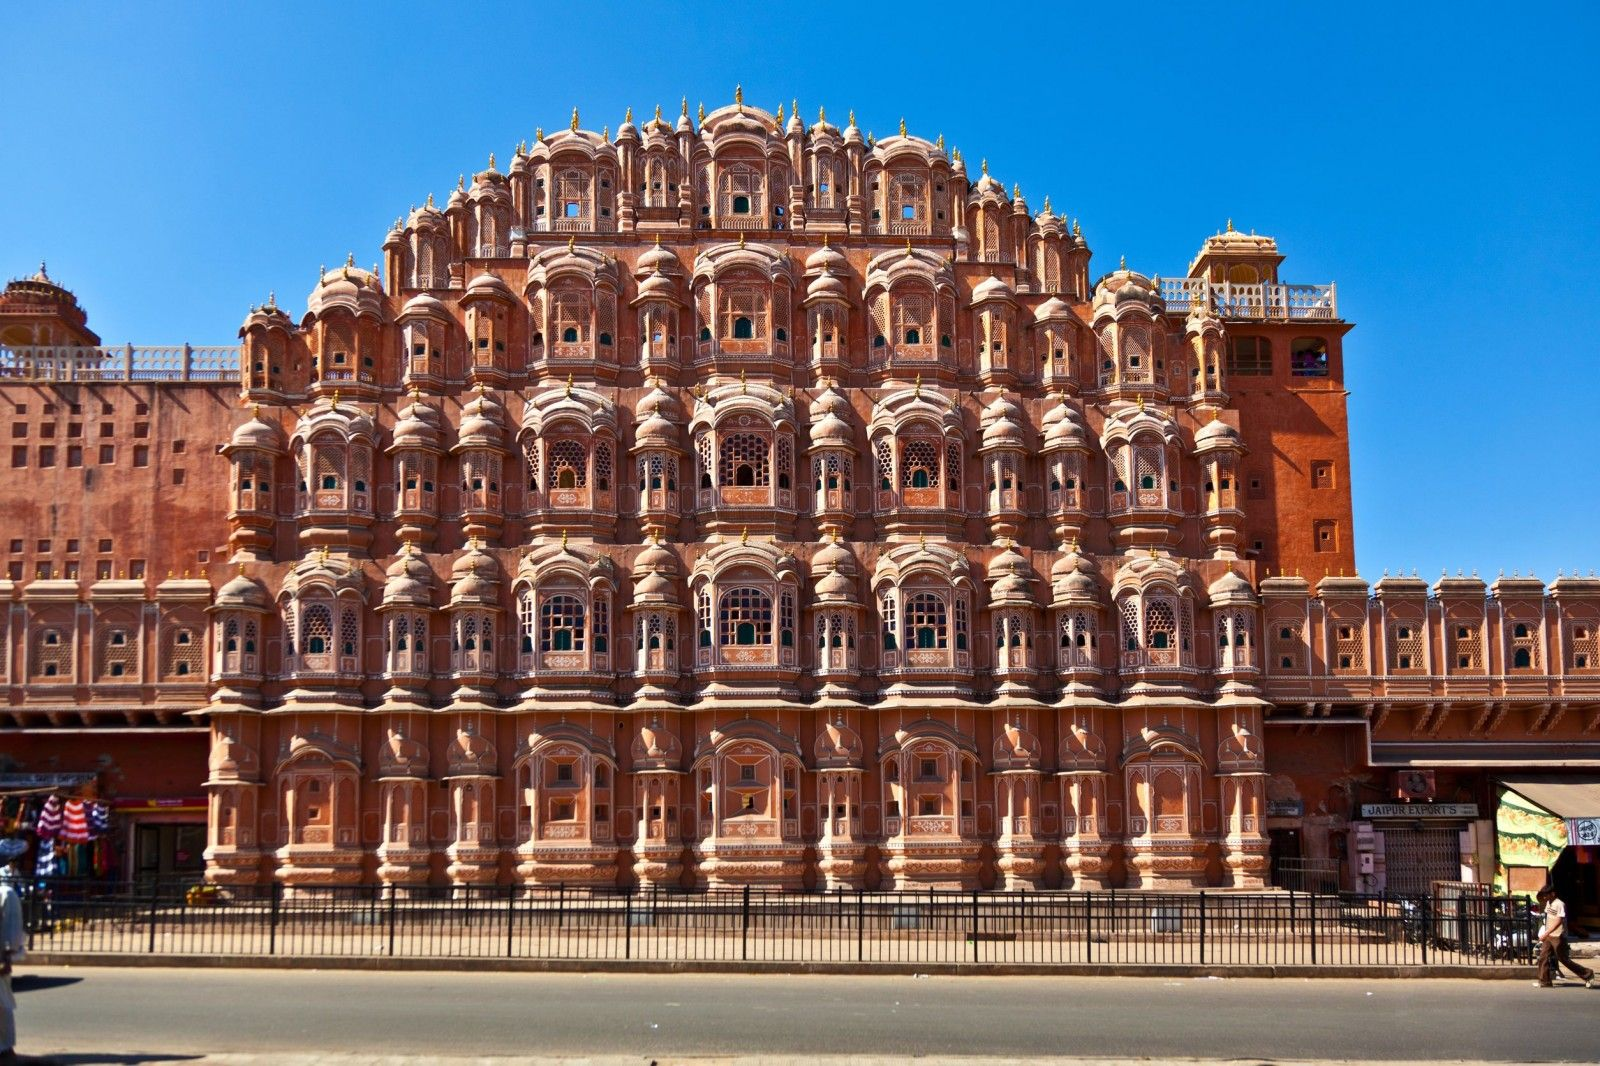 Hawa mahal designed as a beehive castle with small windows has a height of 50 feet from its Home architecture in jaipur